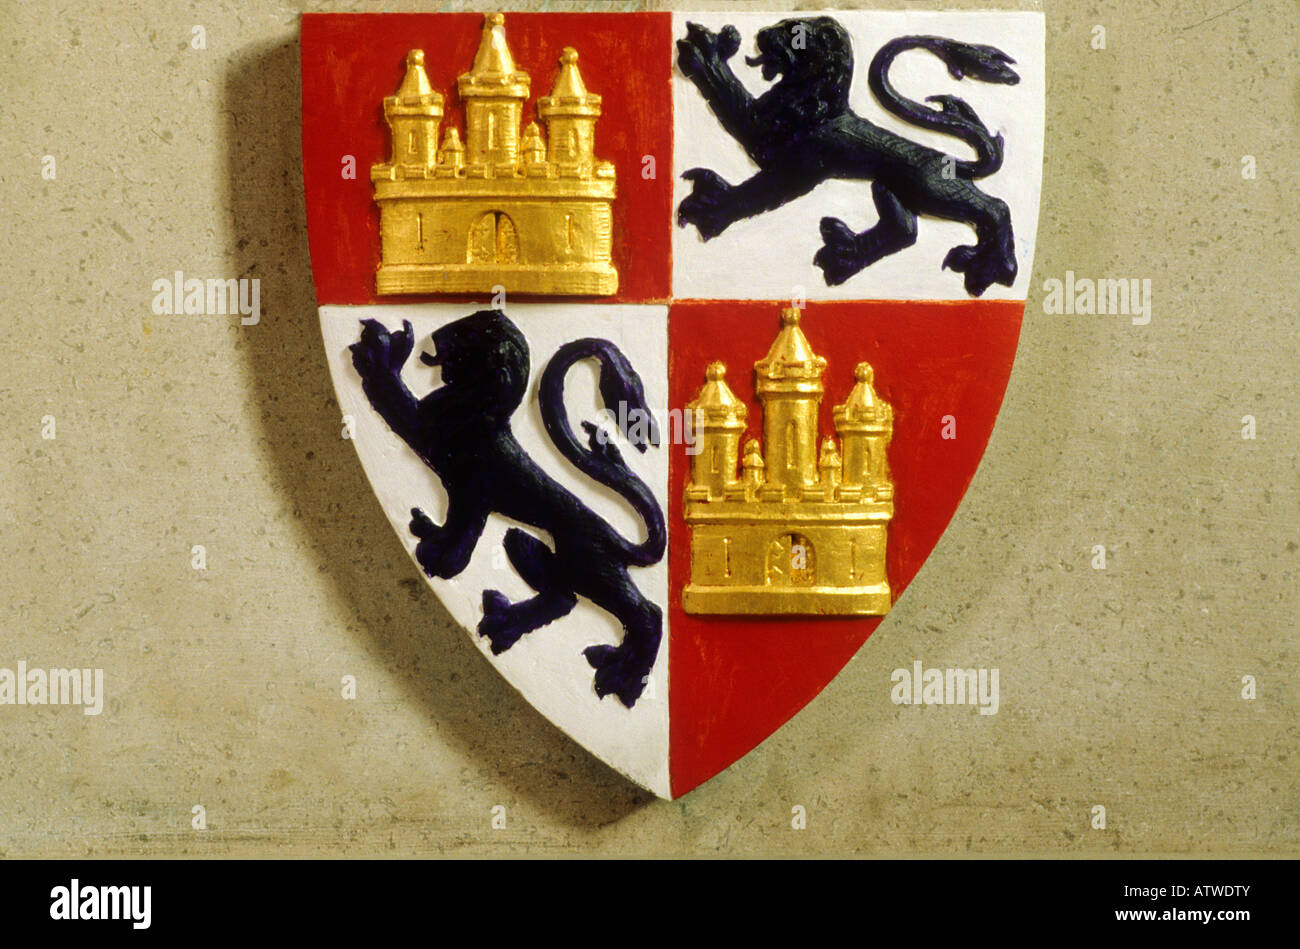 Lincoln Cathedral shield coat of arms heraldry heraldic device medieval black lions gilt gold castle England UK - Stock Image